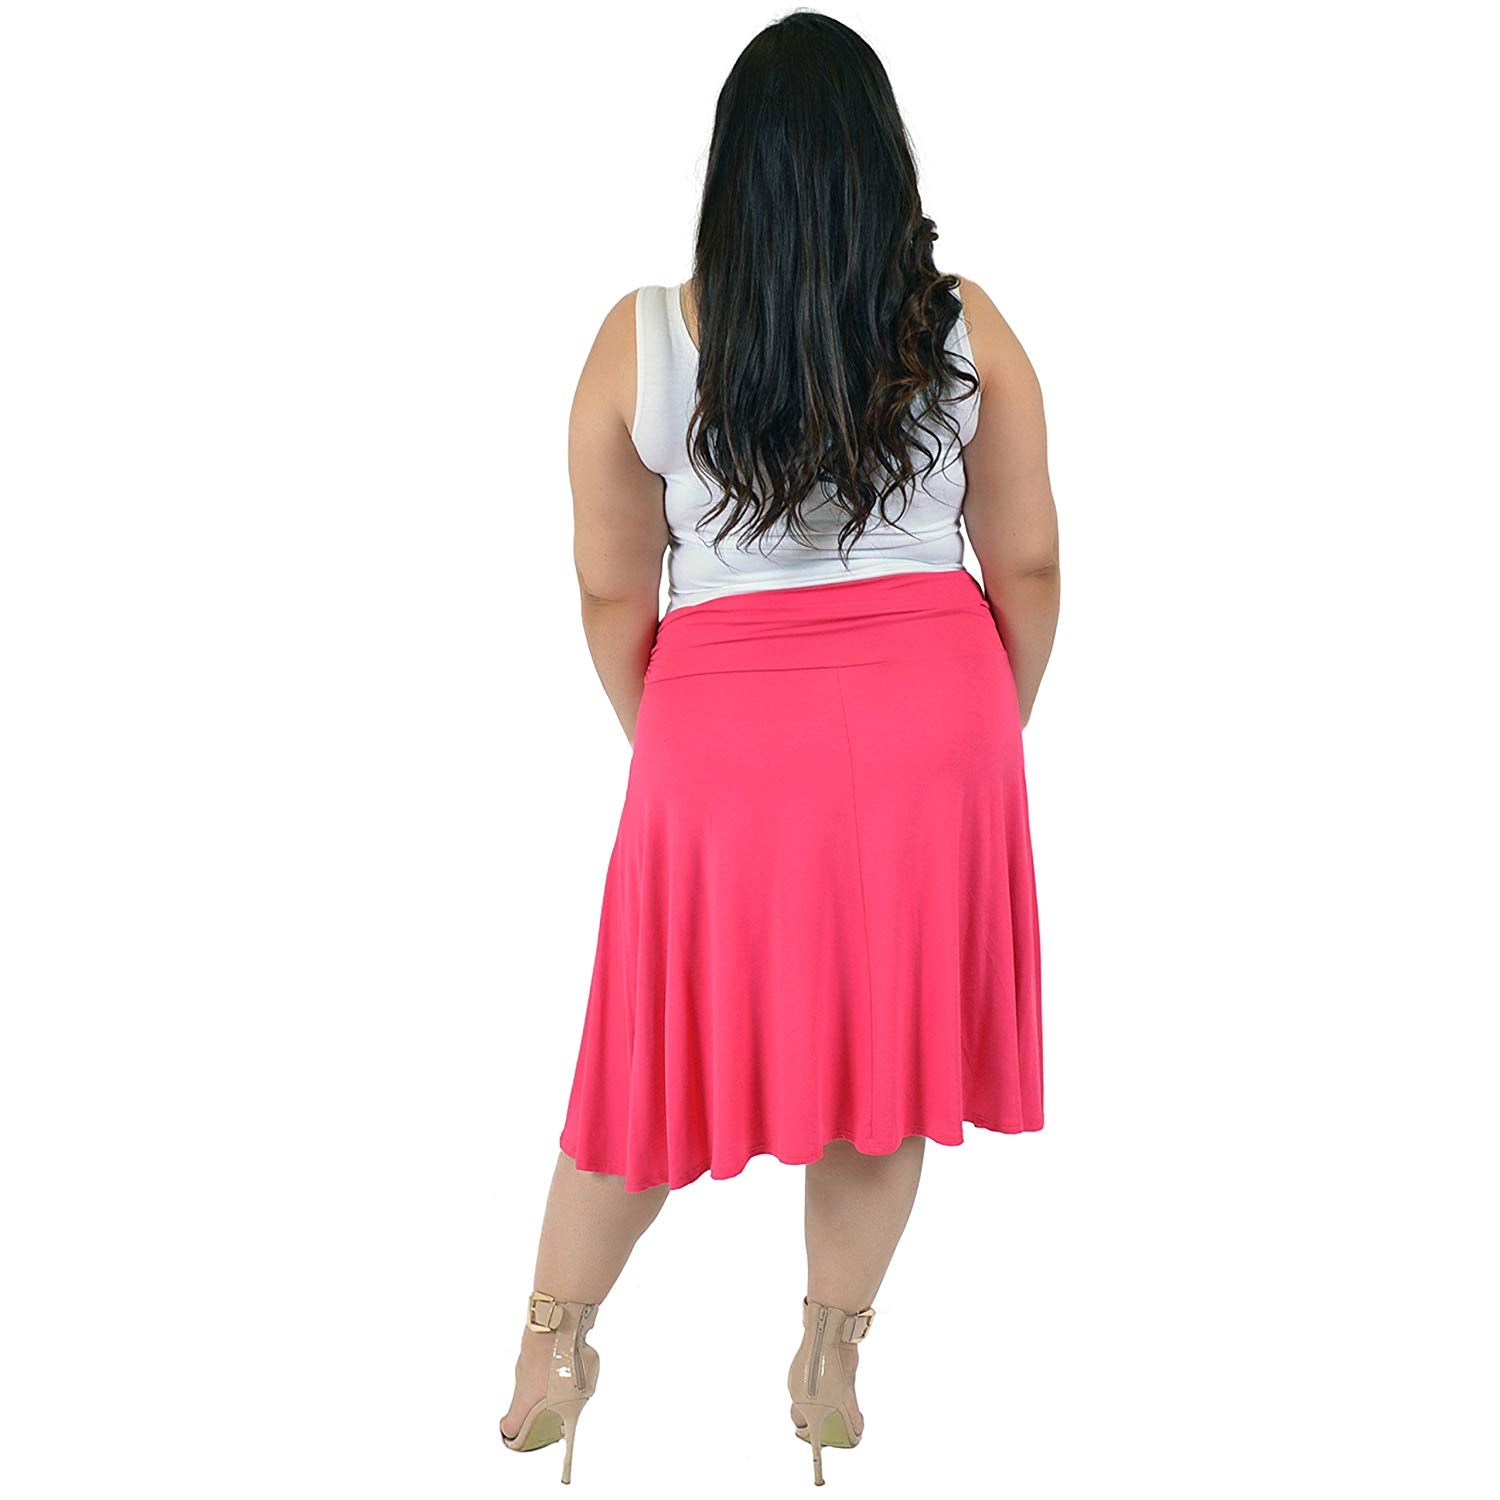 ab72f50ccb8 Stretch is Comfort Women s Plus Size Knee Length Flowy Skirt